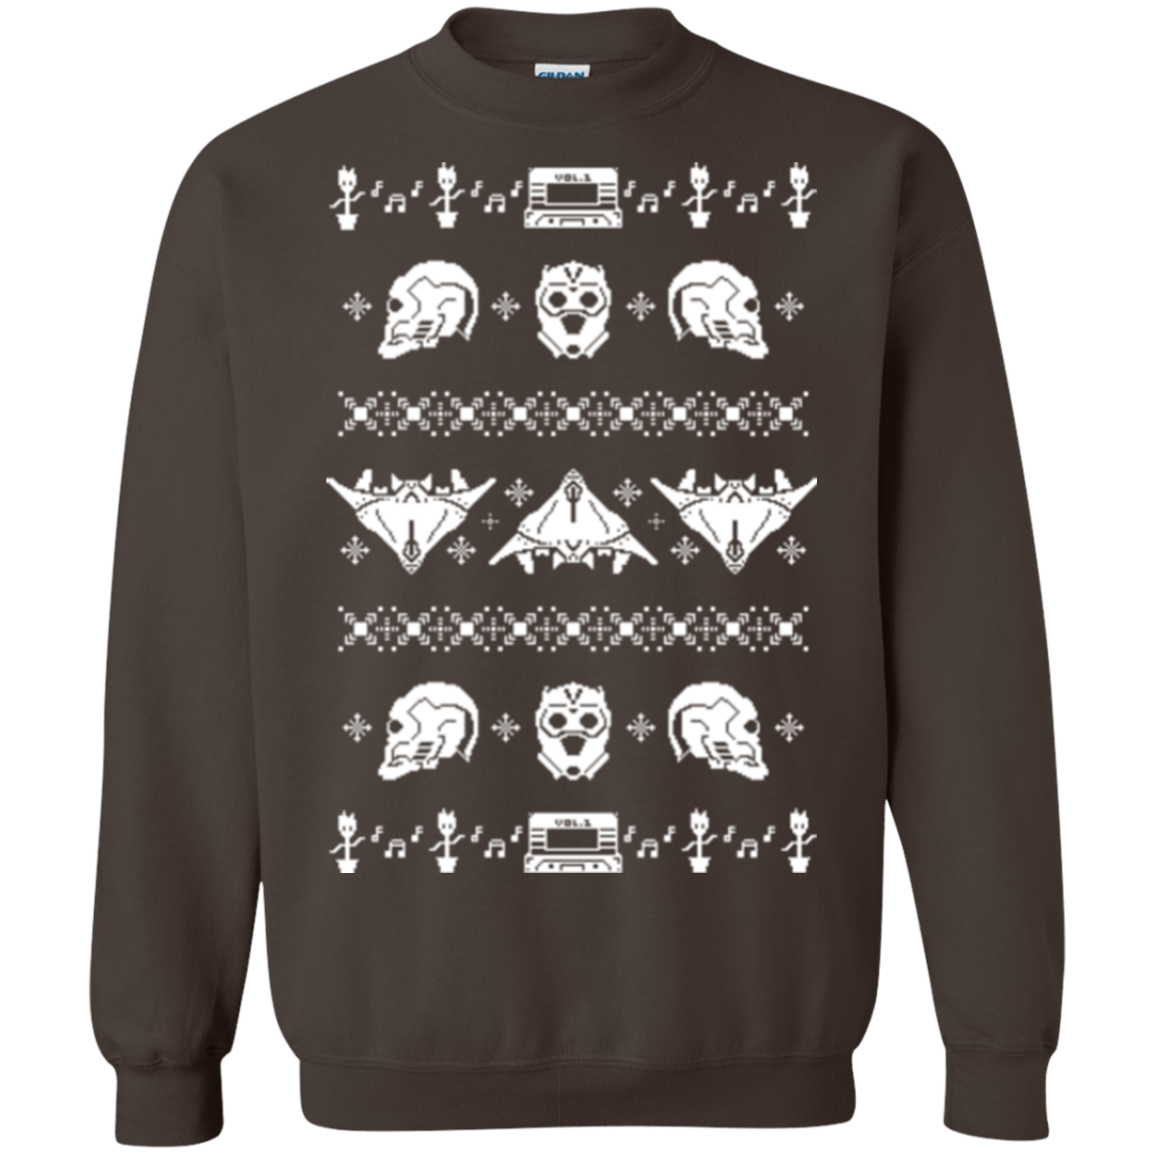 Sweatshirts Dark Chocolate / Small Merry Christmas A-Holes 2 Crewneck Sweatshirt